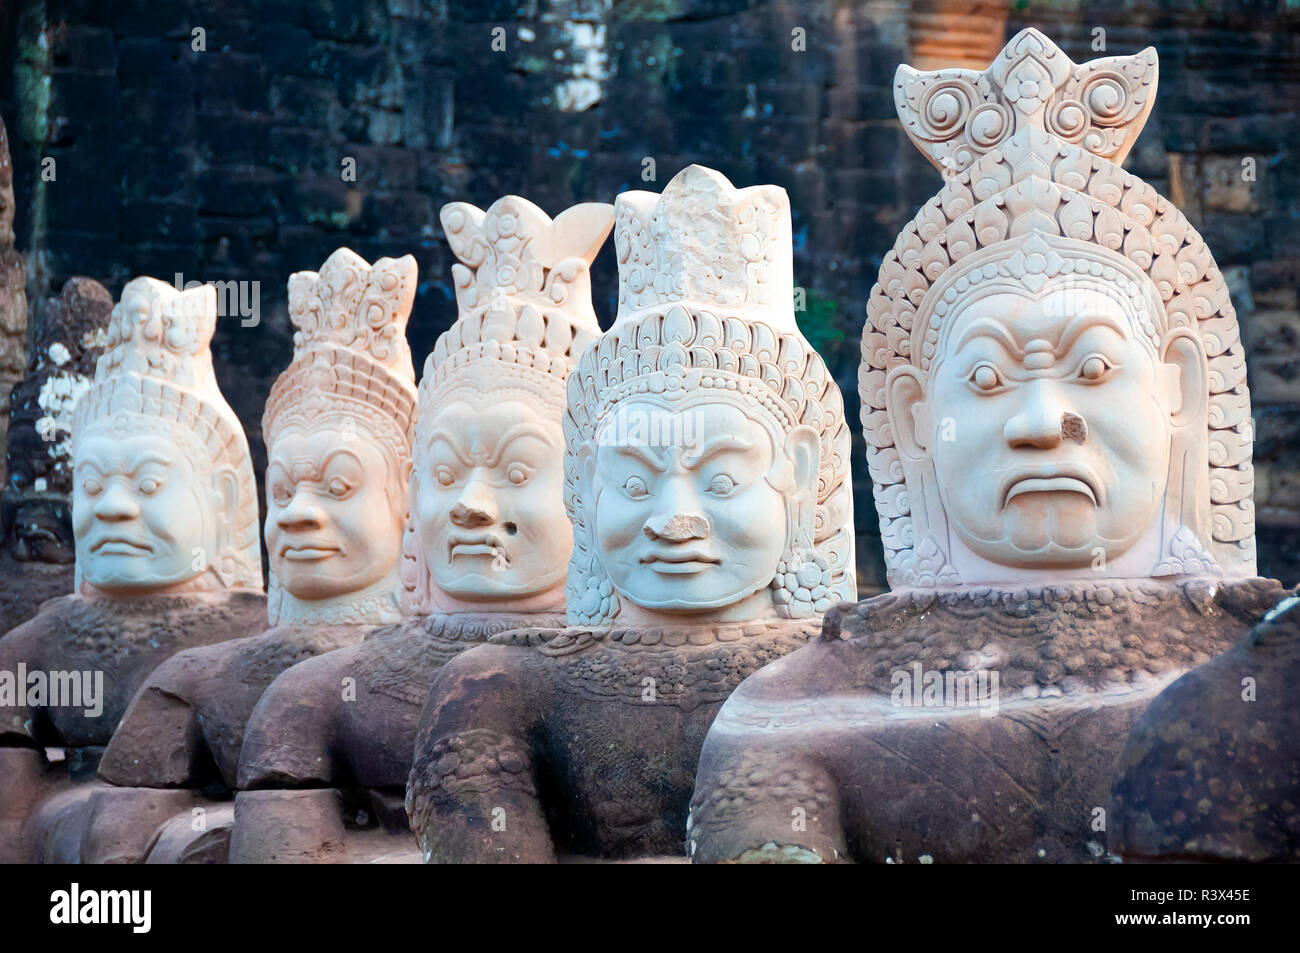 Stone figures line a causeway leading to Angkor Thom showing the 'demons' who wear military headdress - Siem Reap, Cambodia, South East Asia - Stock Image